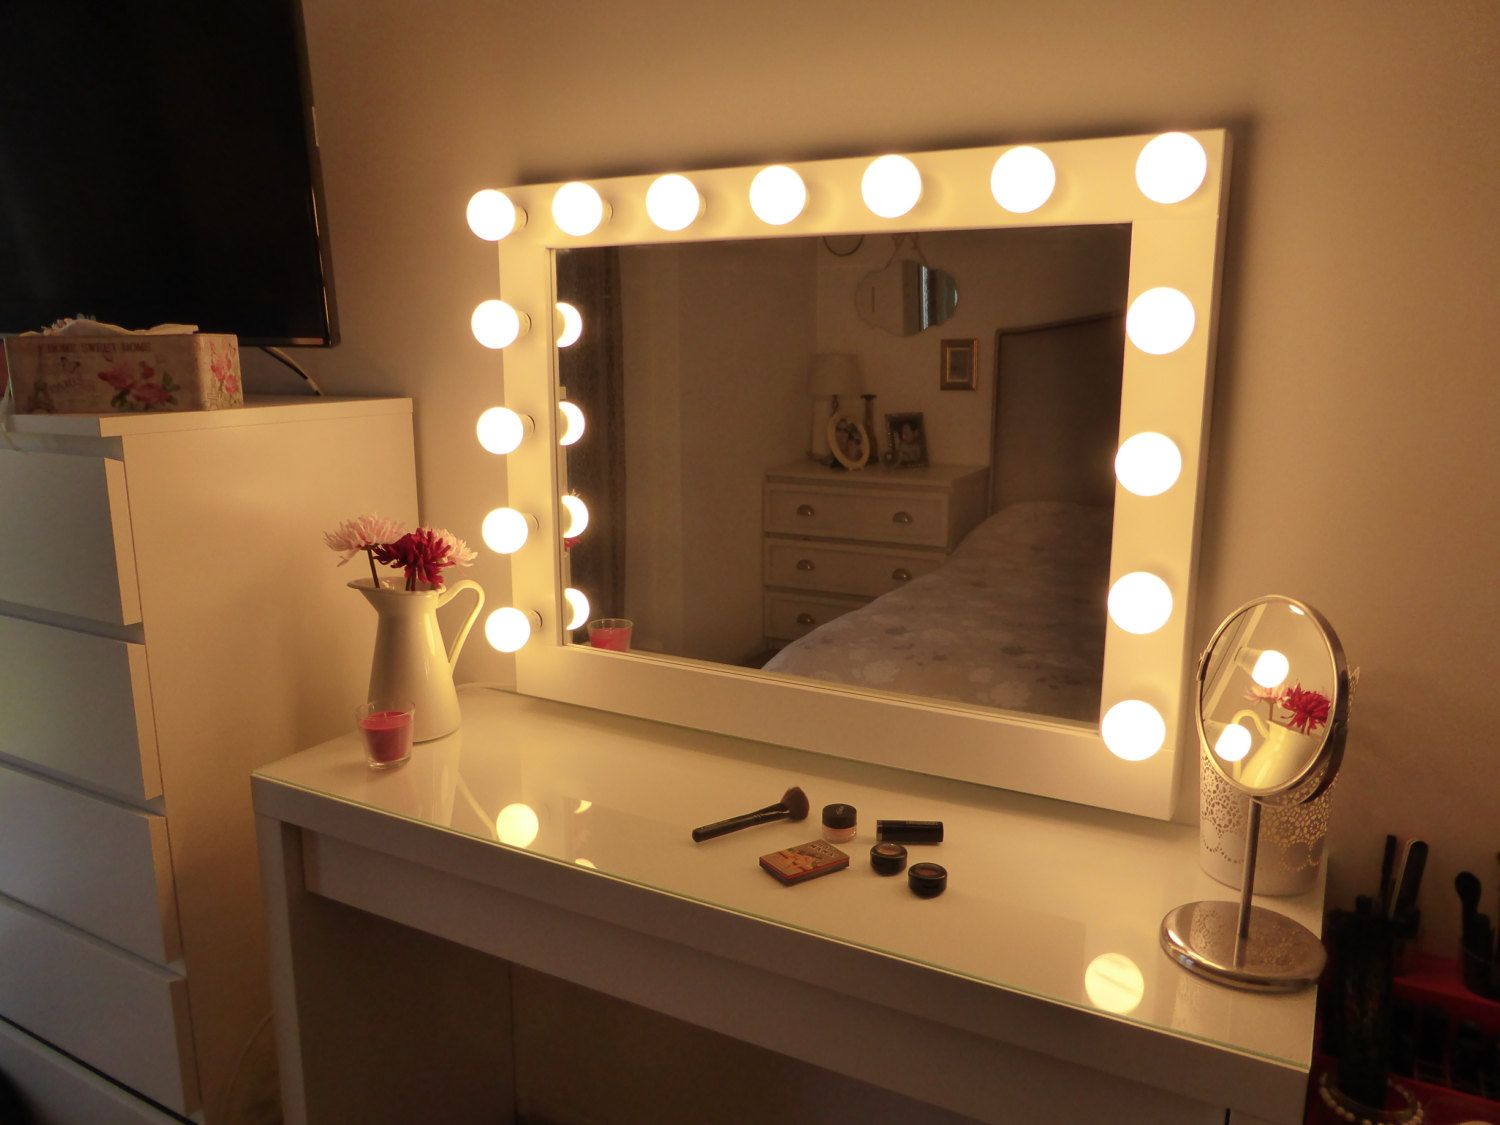 Hollywood lighted vanity mirror large makeup mirror with lights wall hollywood lighted vanity mirror large makeup mirror with lights wall hangingfree standing perfect for ikea malm vanity bulbs not included aloadofball Choice Image